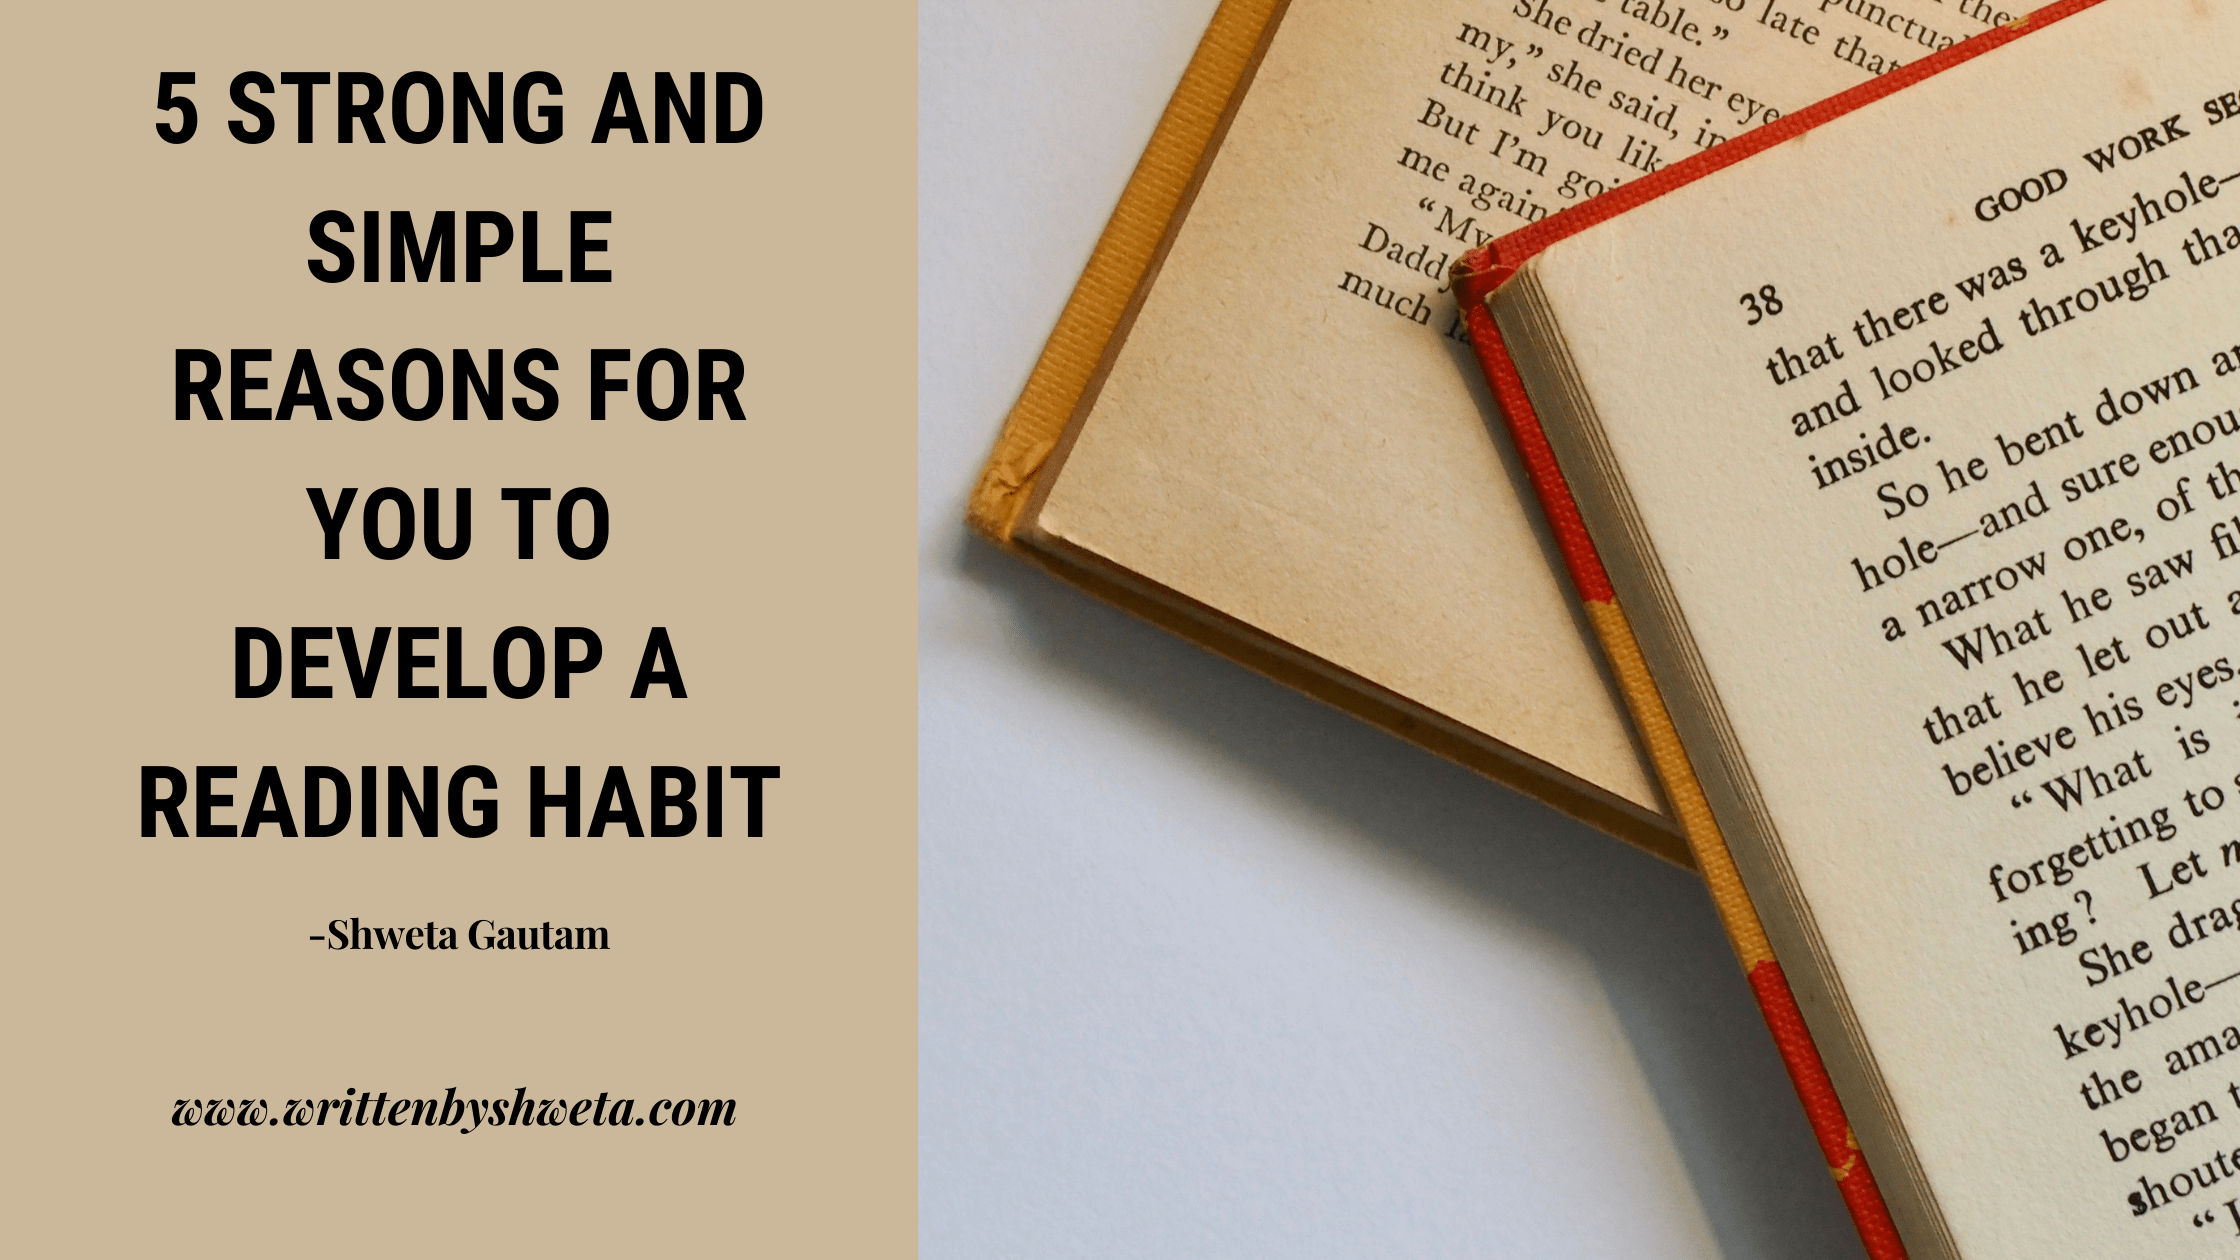 5 STRONG AND SIMPLE REASONS FOR YOU TO DEVELOP A READING HABIT